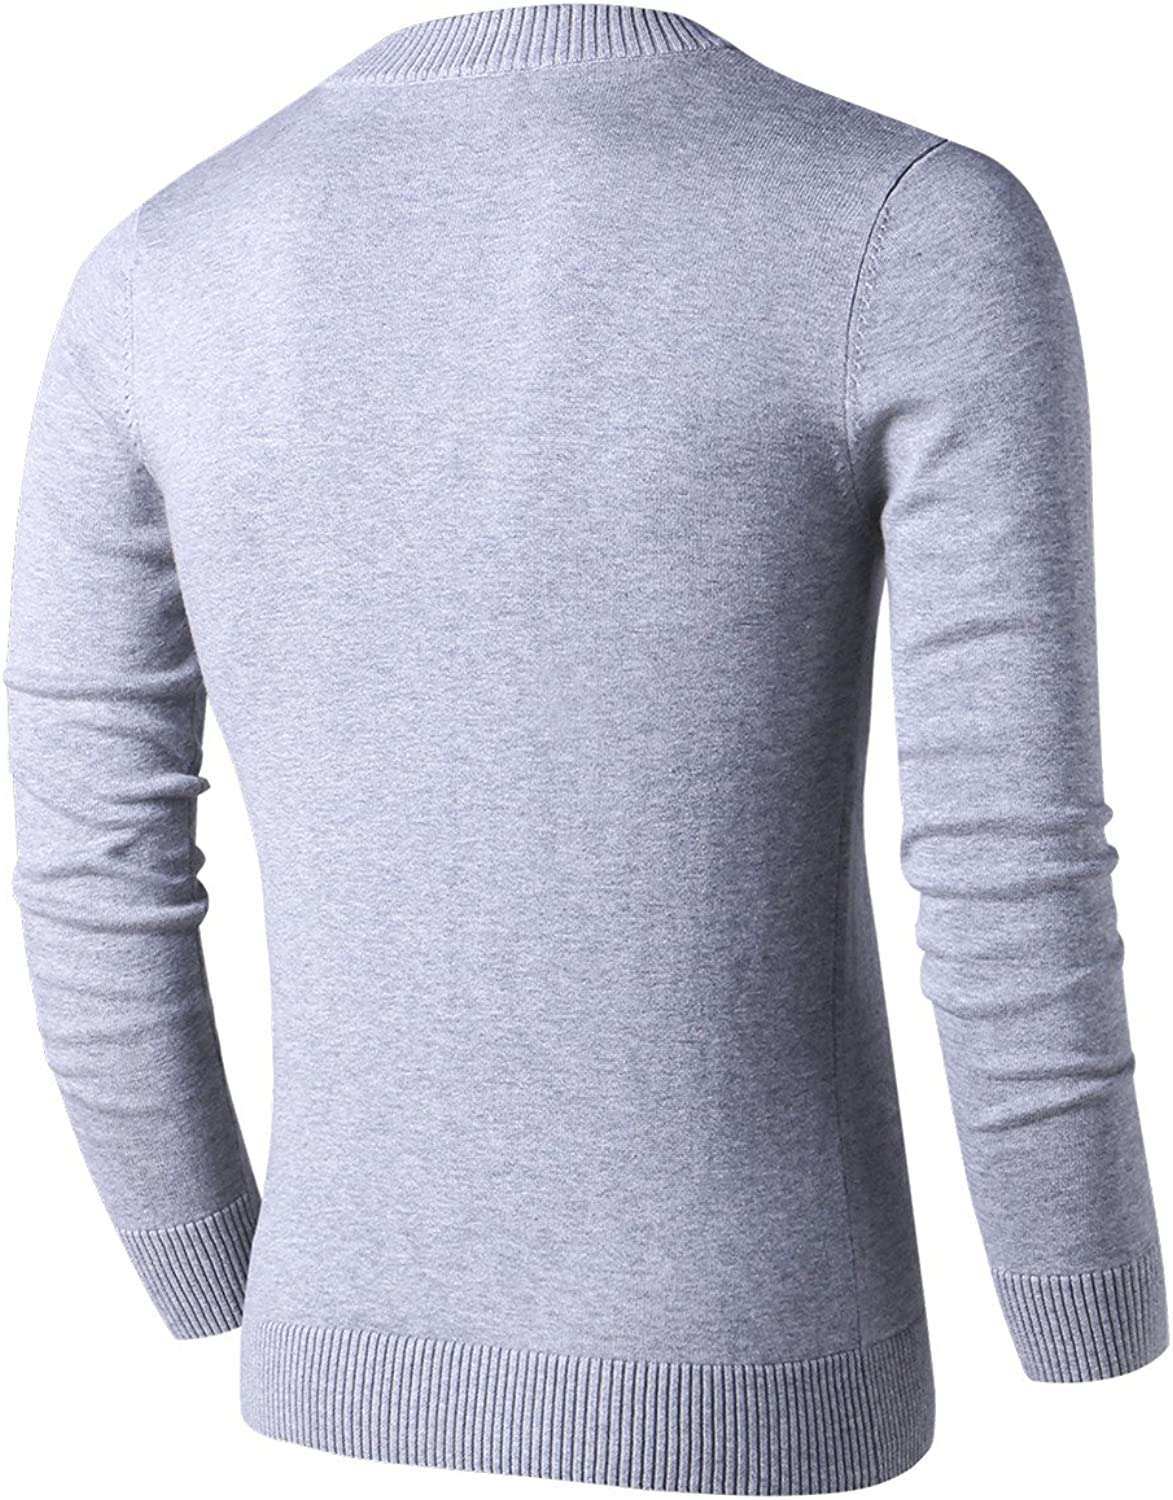 LTIFONE Sweaters for Men,V Neck Slim Comfortably,Knitted Long Sleeve